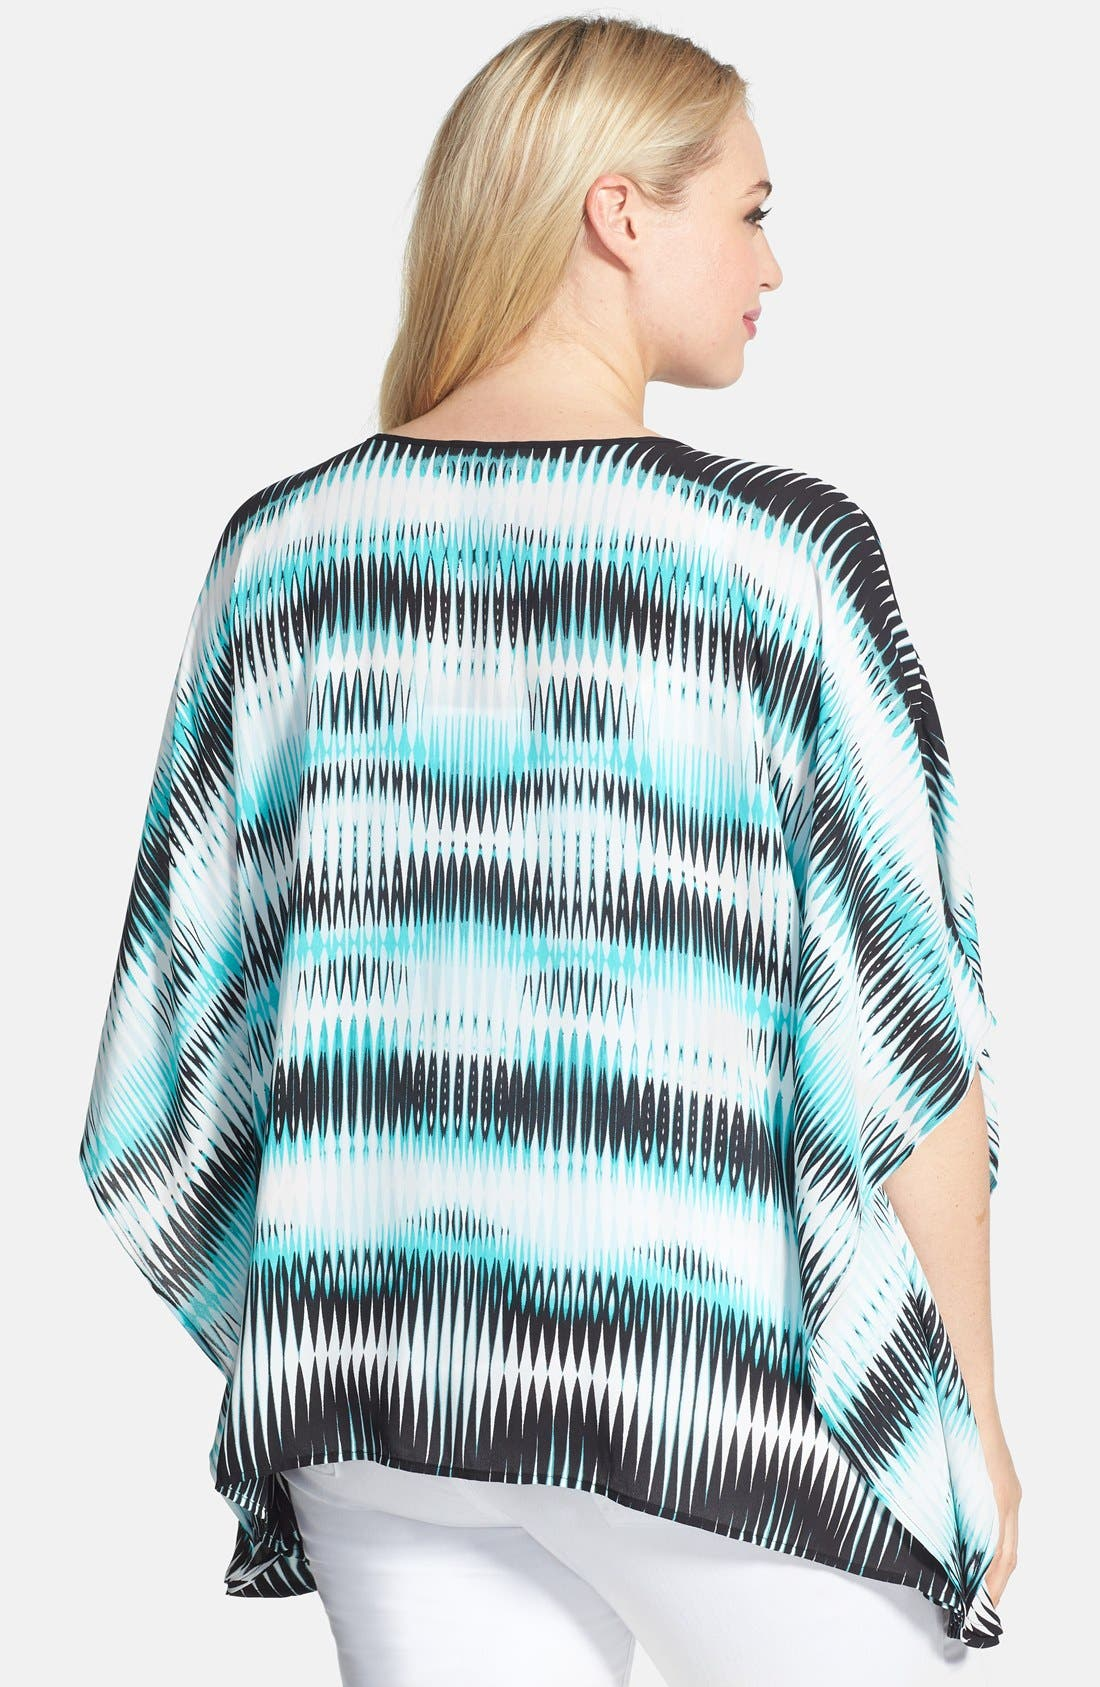 Alternate Image 2  - Vince Camuto 'Linear Echoes' Caftan Style Top (Plus Size)